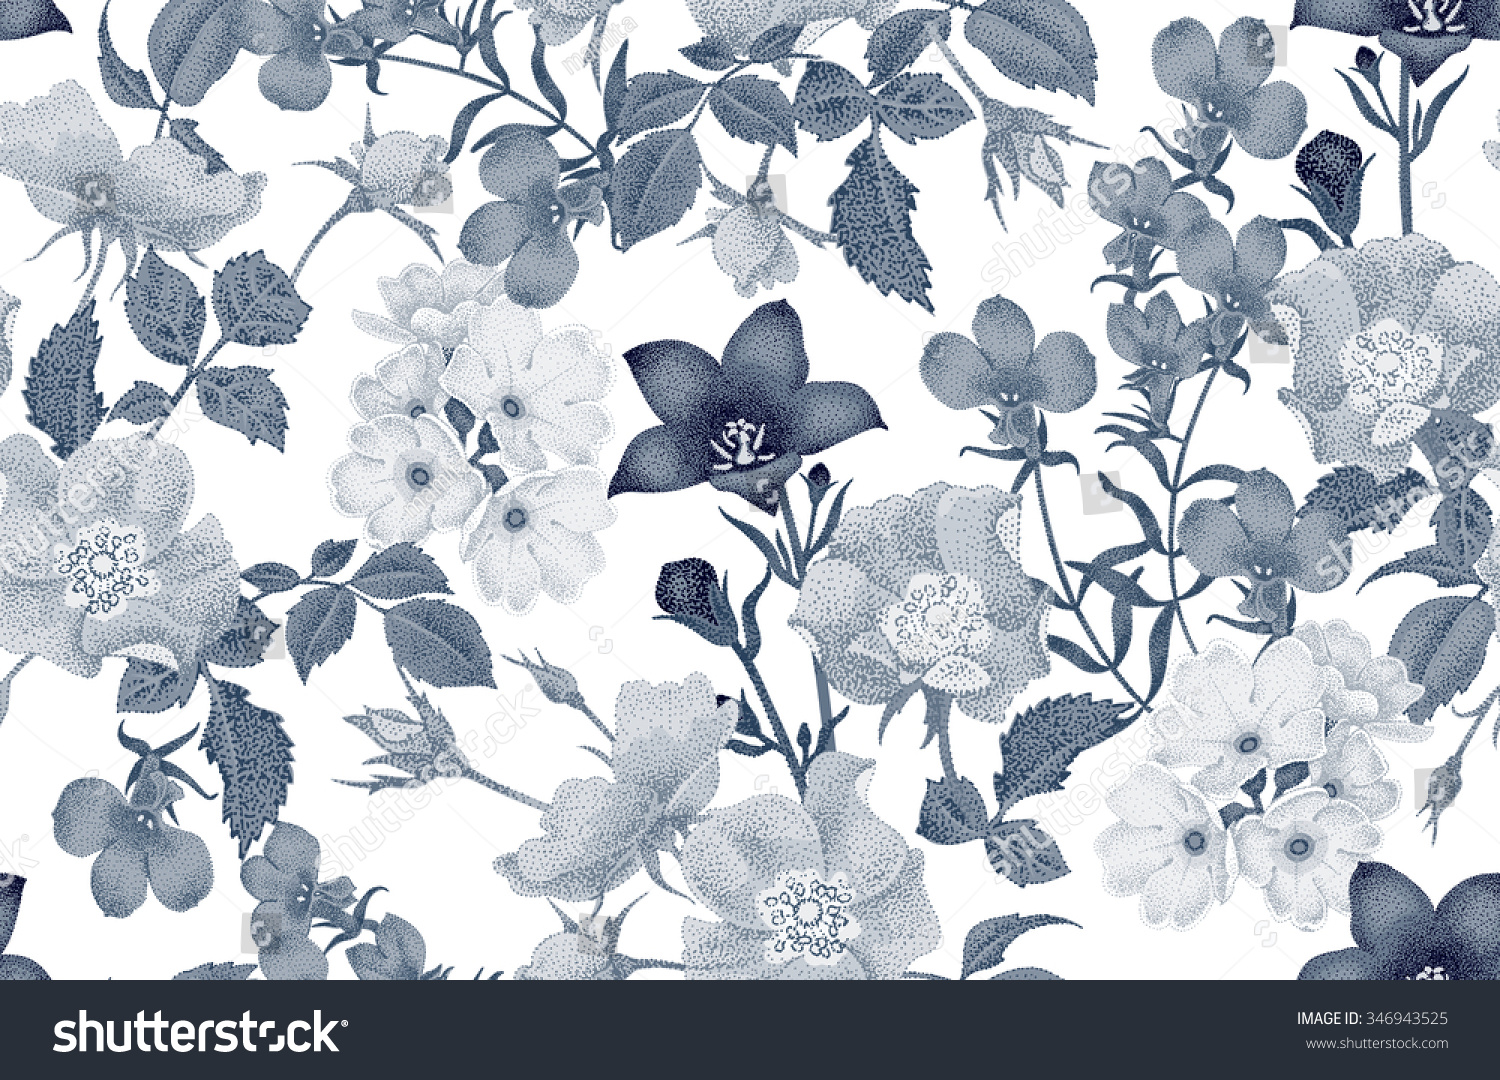 Vintage floral seamless background with blooming roses and garden flowers Vector pattern Black and white Illustration for use in interior design artwork dishes clothing packaging store windows